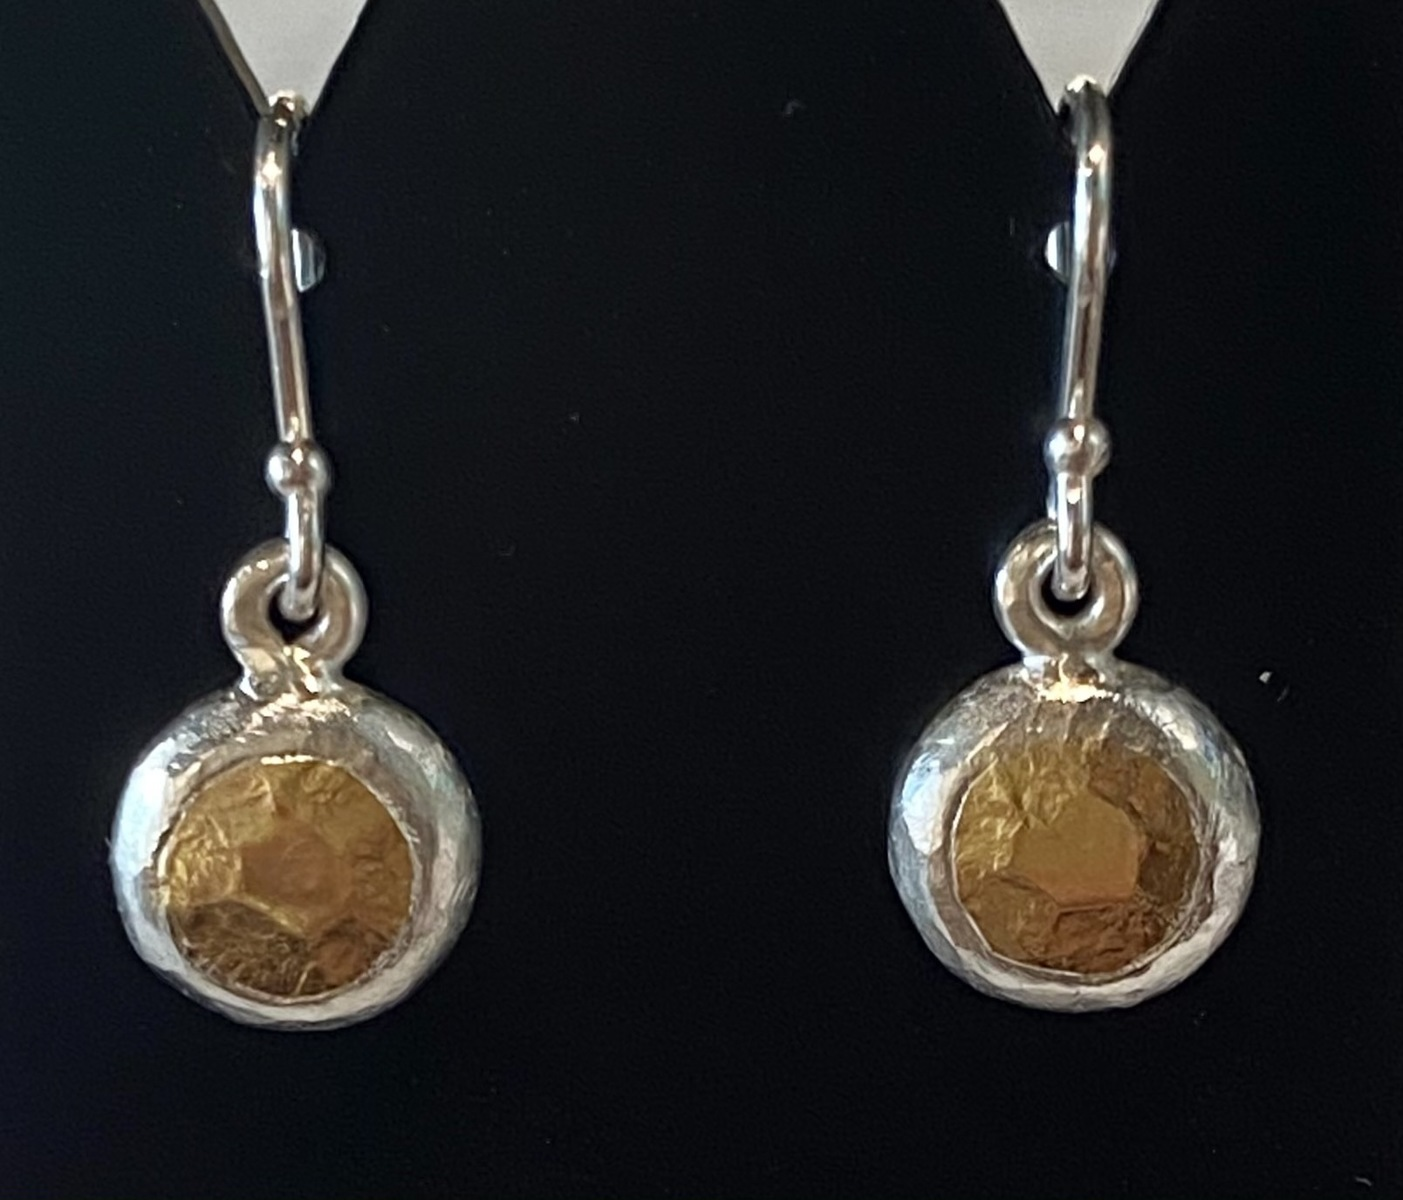 Fine and Sterling silver earrings with 22 ct. gold- hooks - short